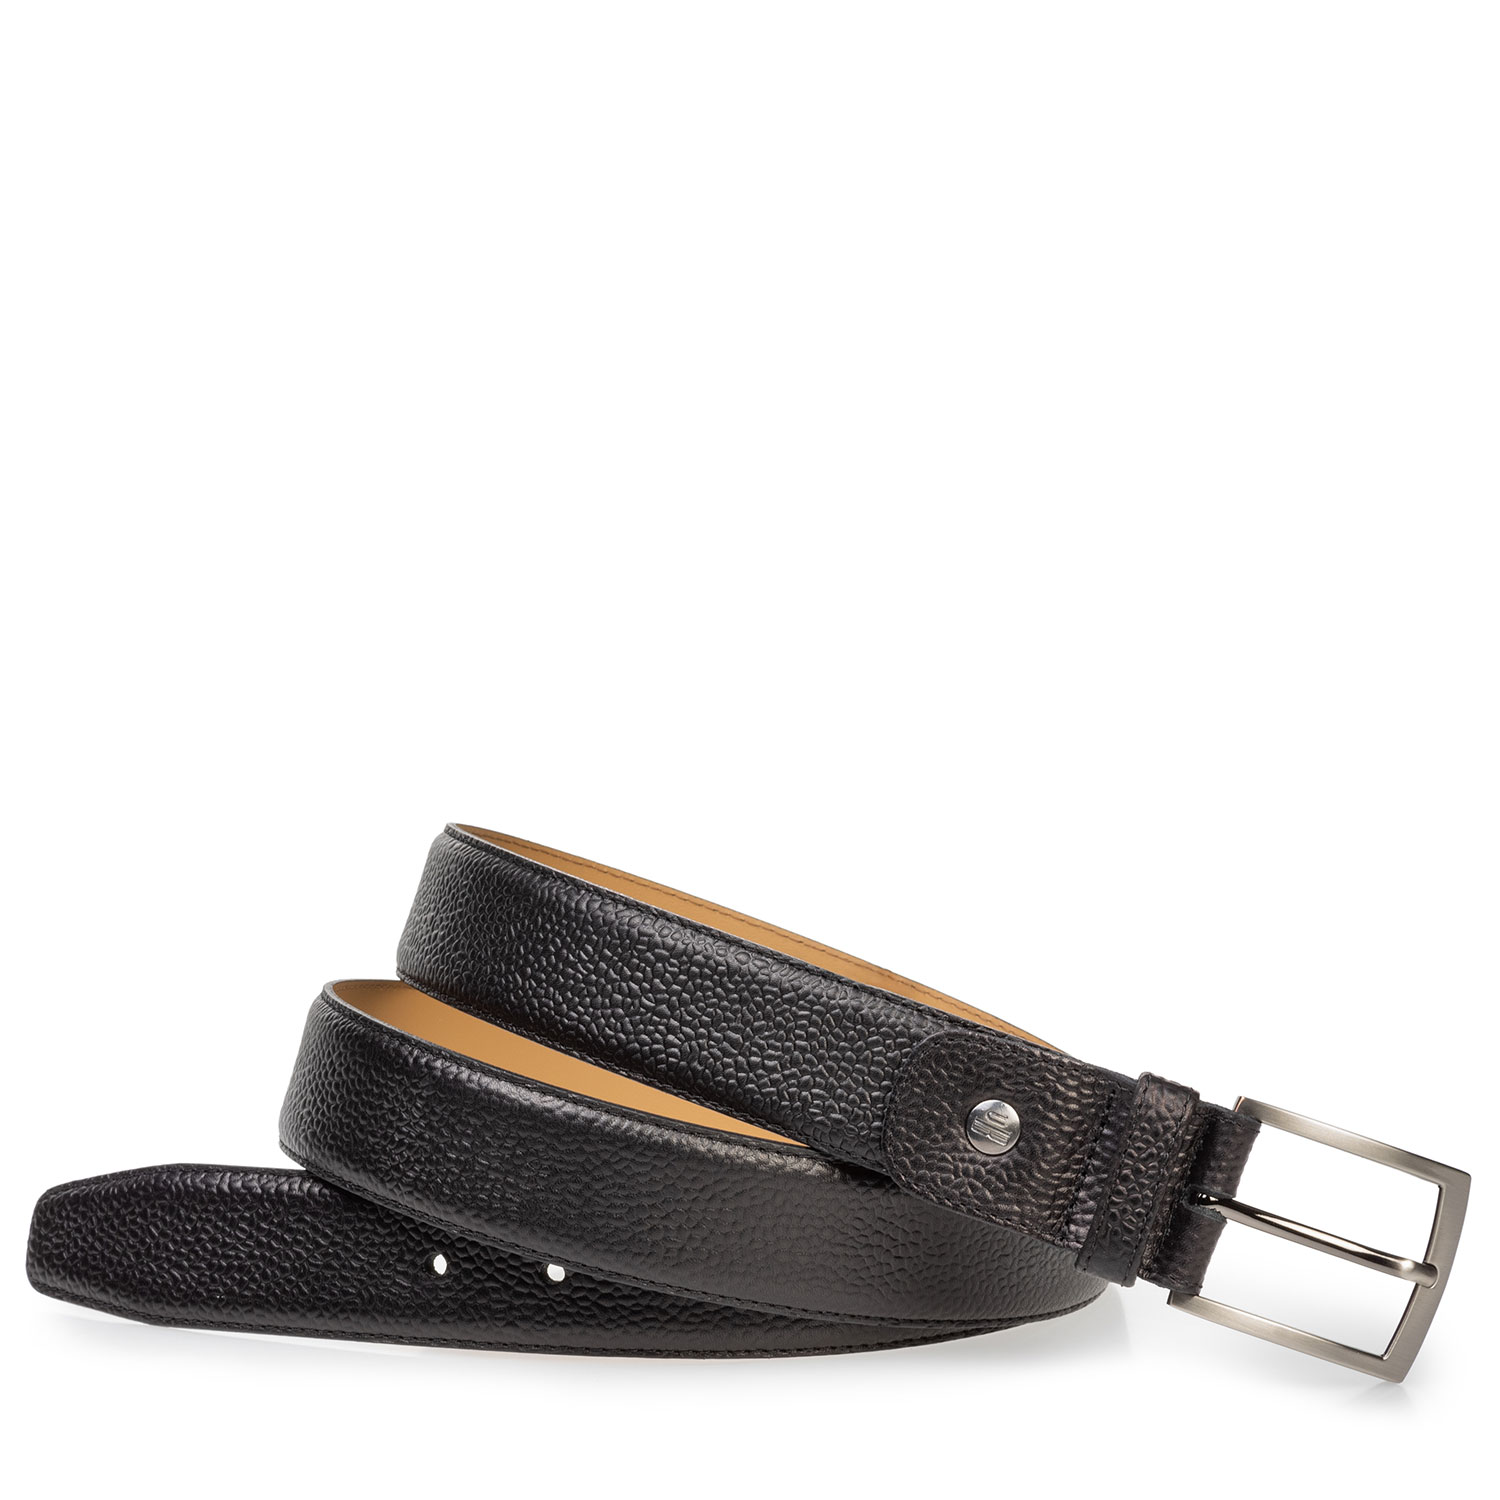 75533/48 - Black leather belt with structured pattern